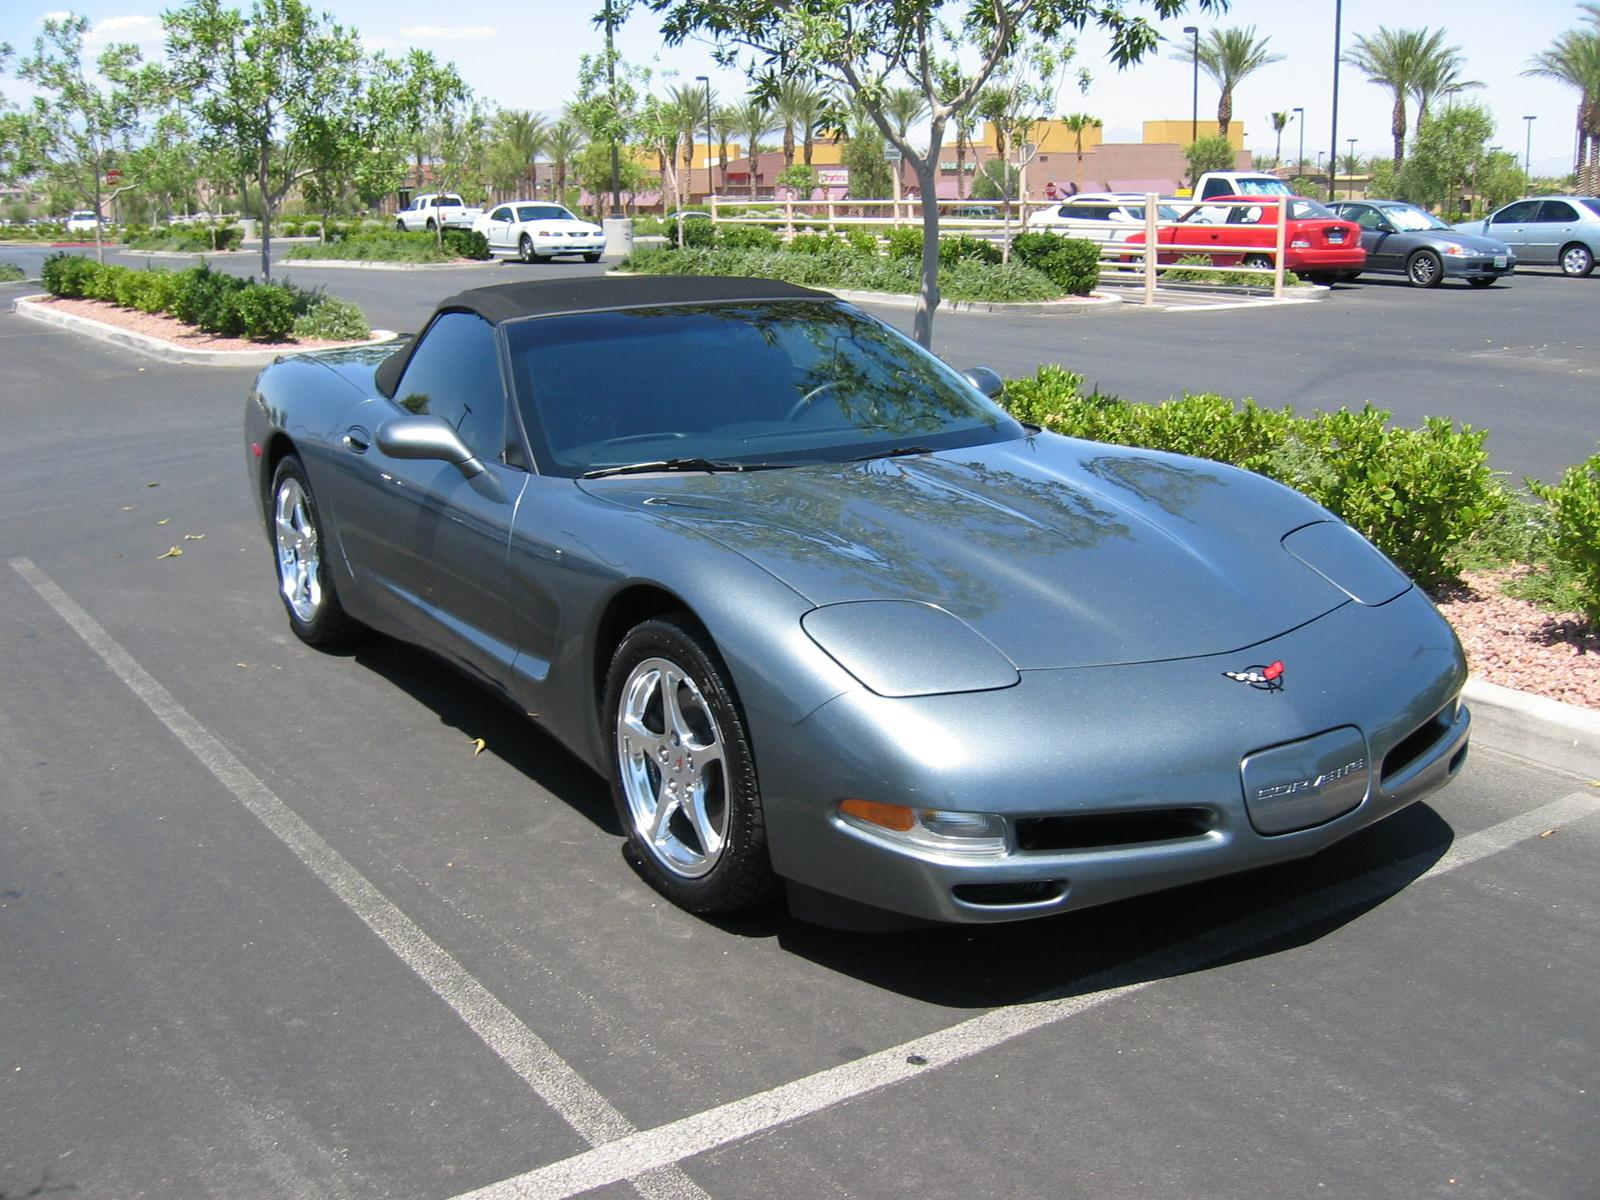 chevrolet corvette essay Free camaro papers, essays, and research papers my account search results free essays good essays chevrolet camaro, and chevrolet corvette.